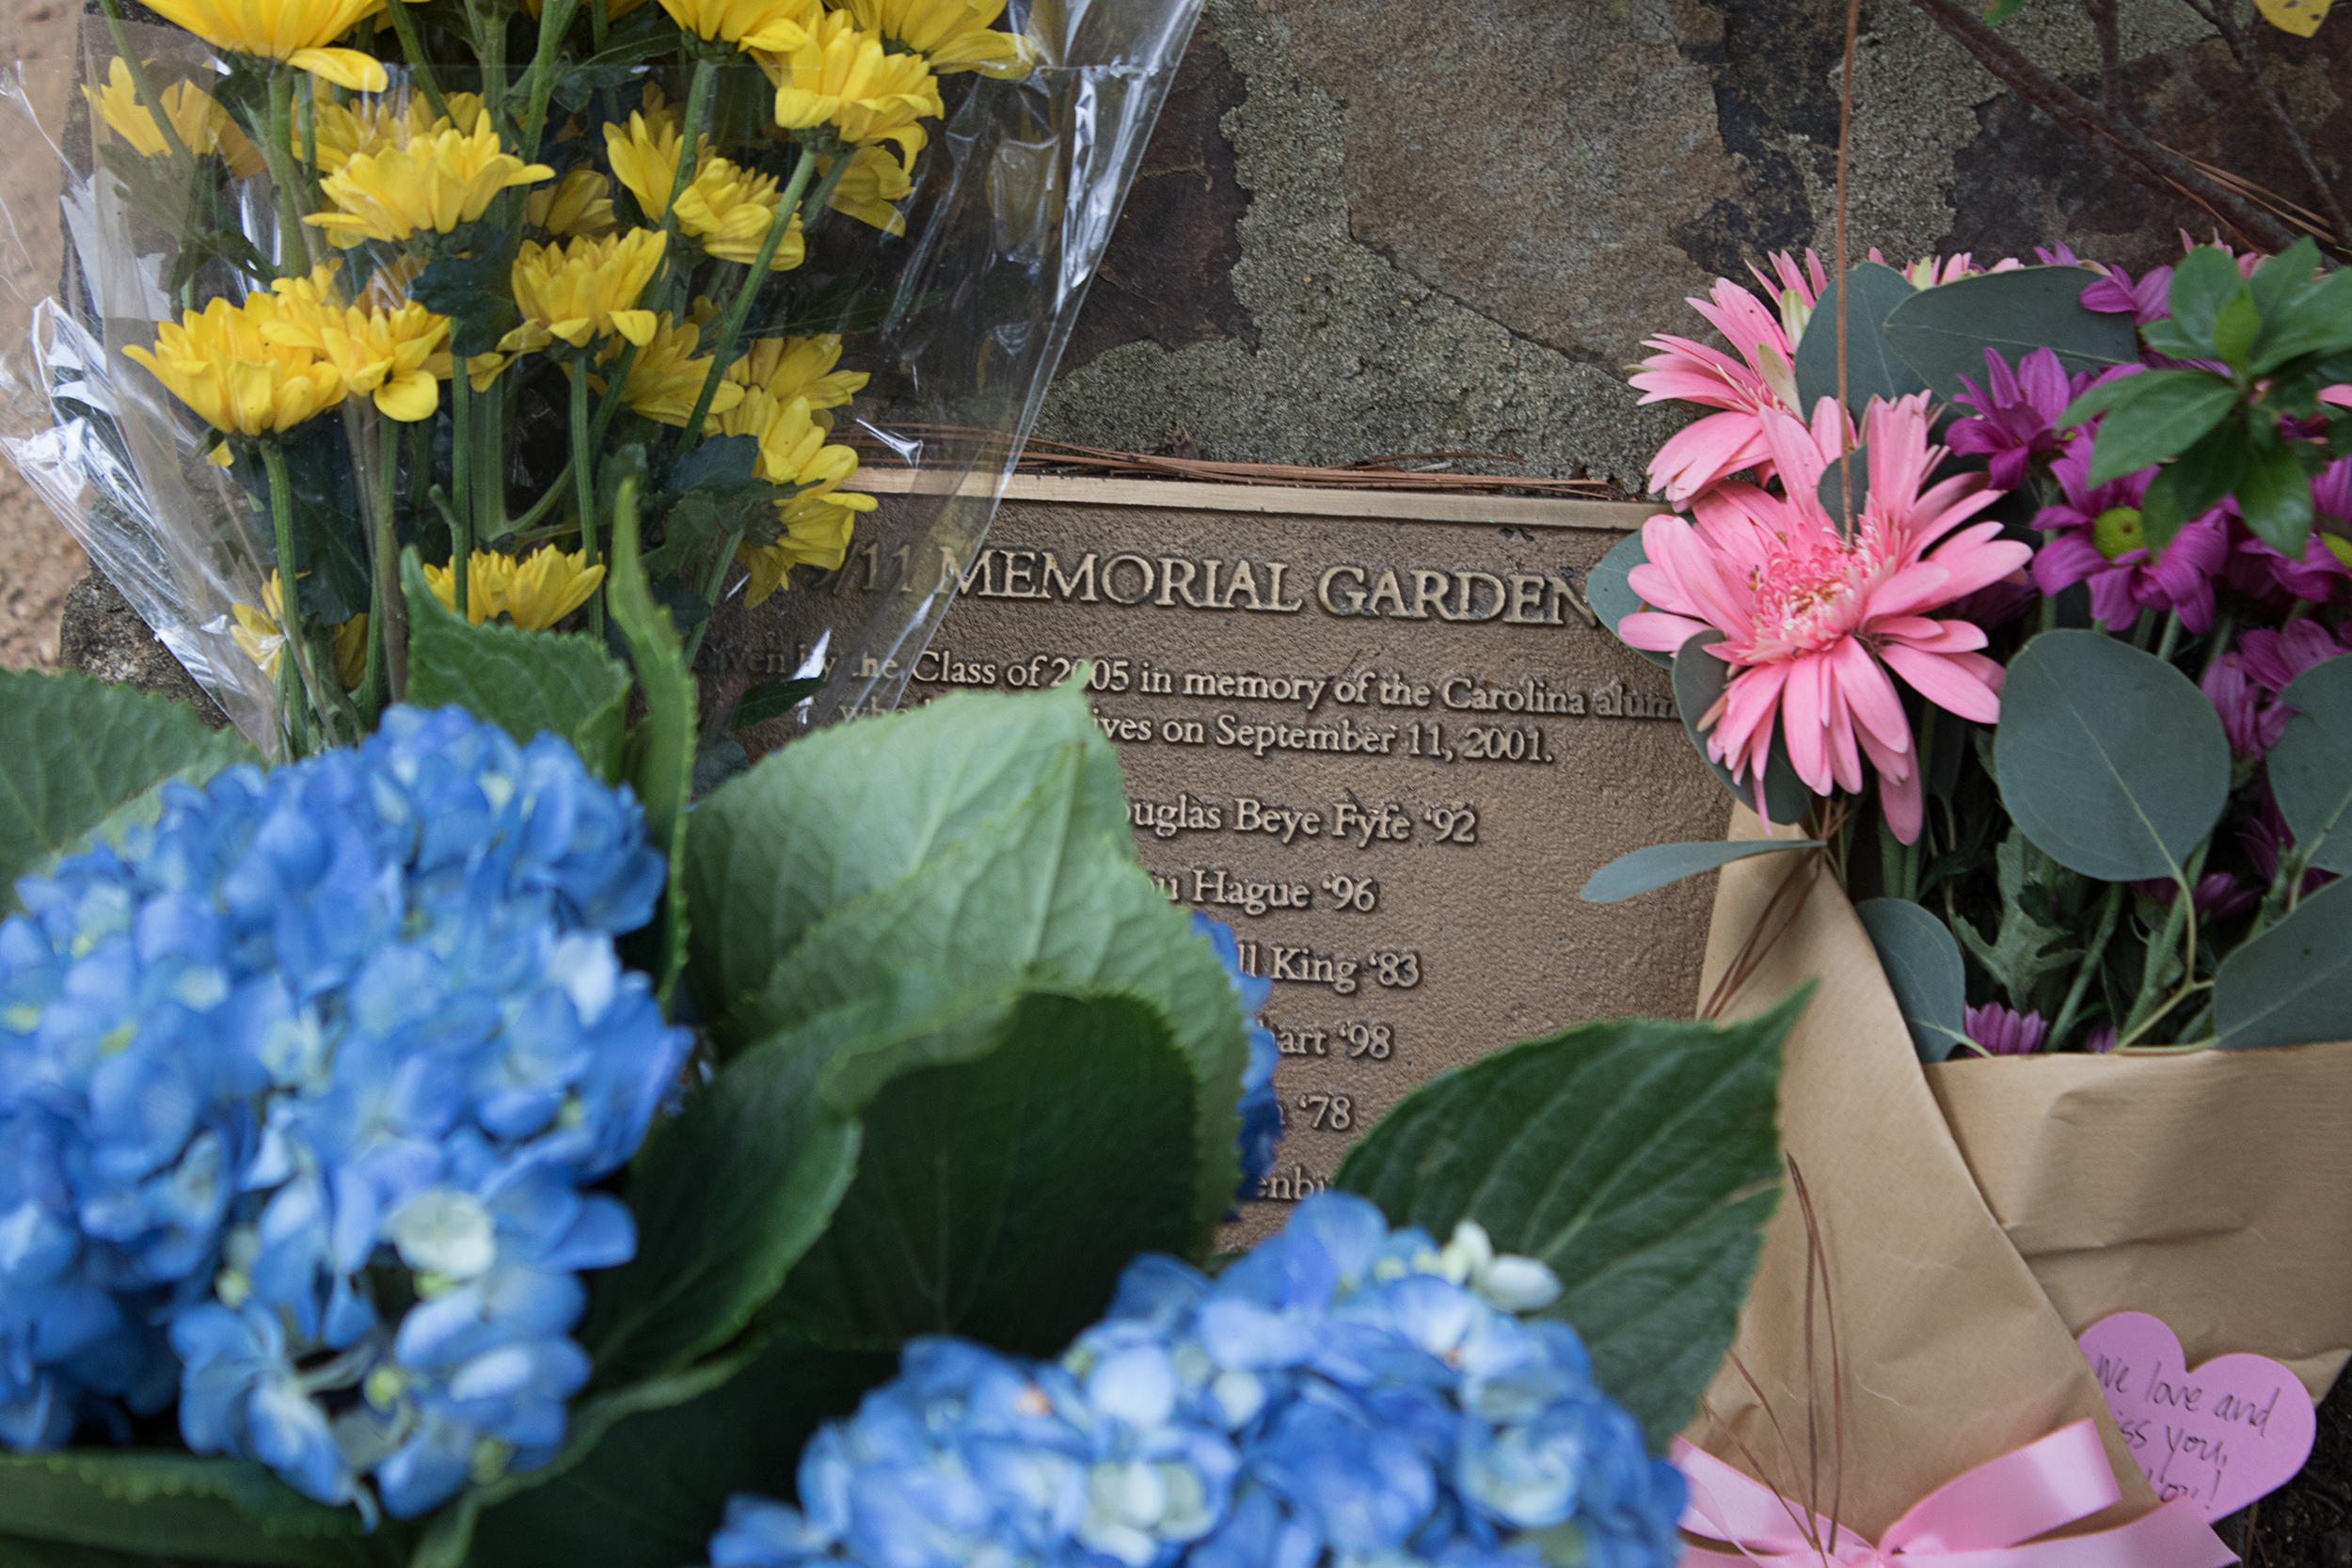 Flowers left at the plaque in the 9/11 Memorial Garden on Stadium Drive near the George Watts Hill Alumni Center. The plaque lists the names of the six alumni lost on 9/11. (Photo by Jason D. Smith '94)